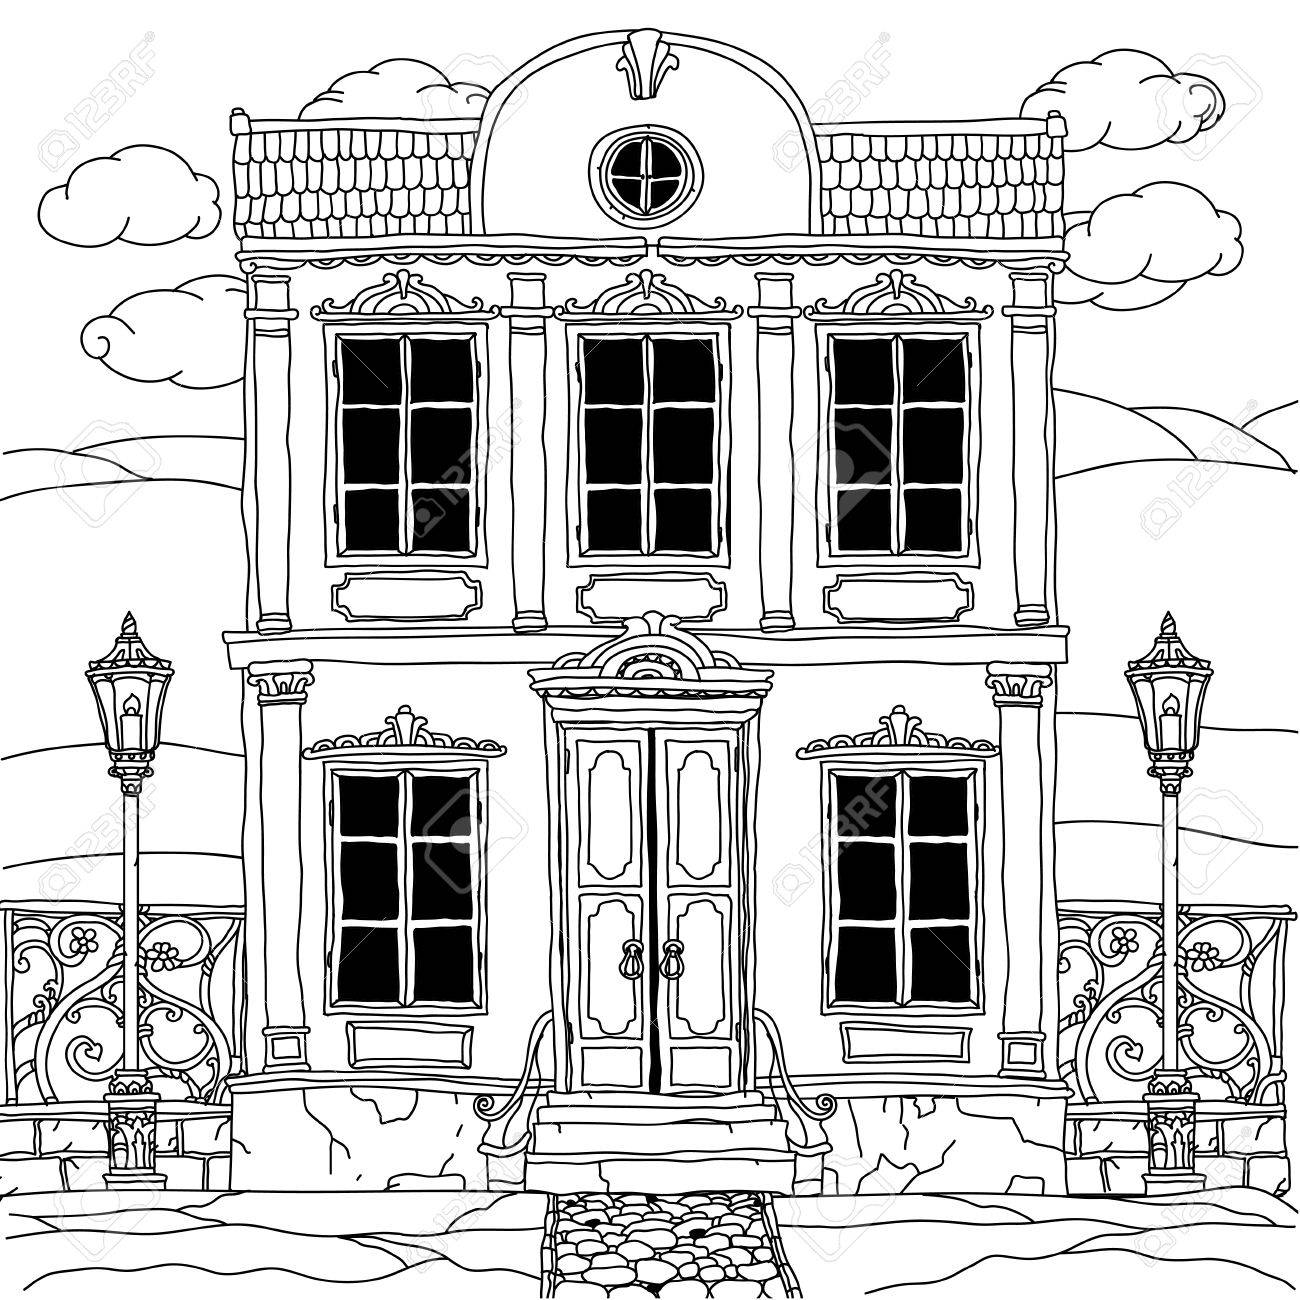 House Drawing With Details For Adult Coloring Book Or For Zen ...